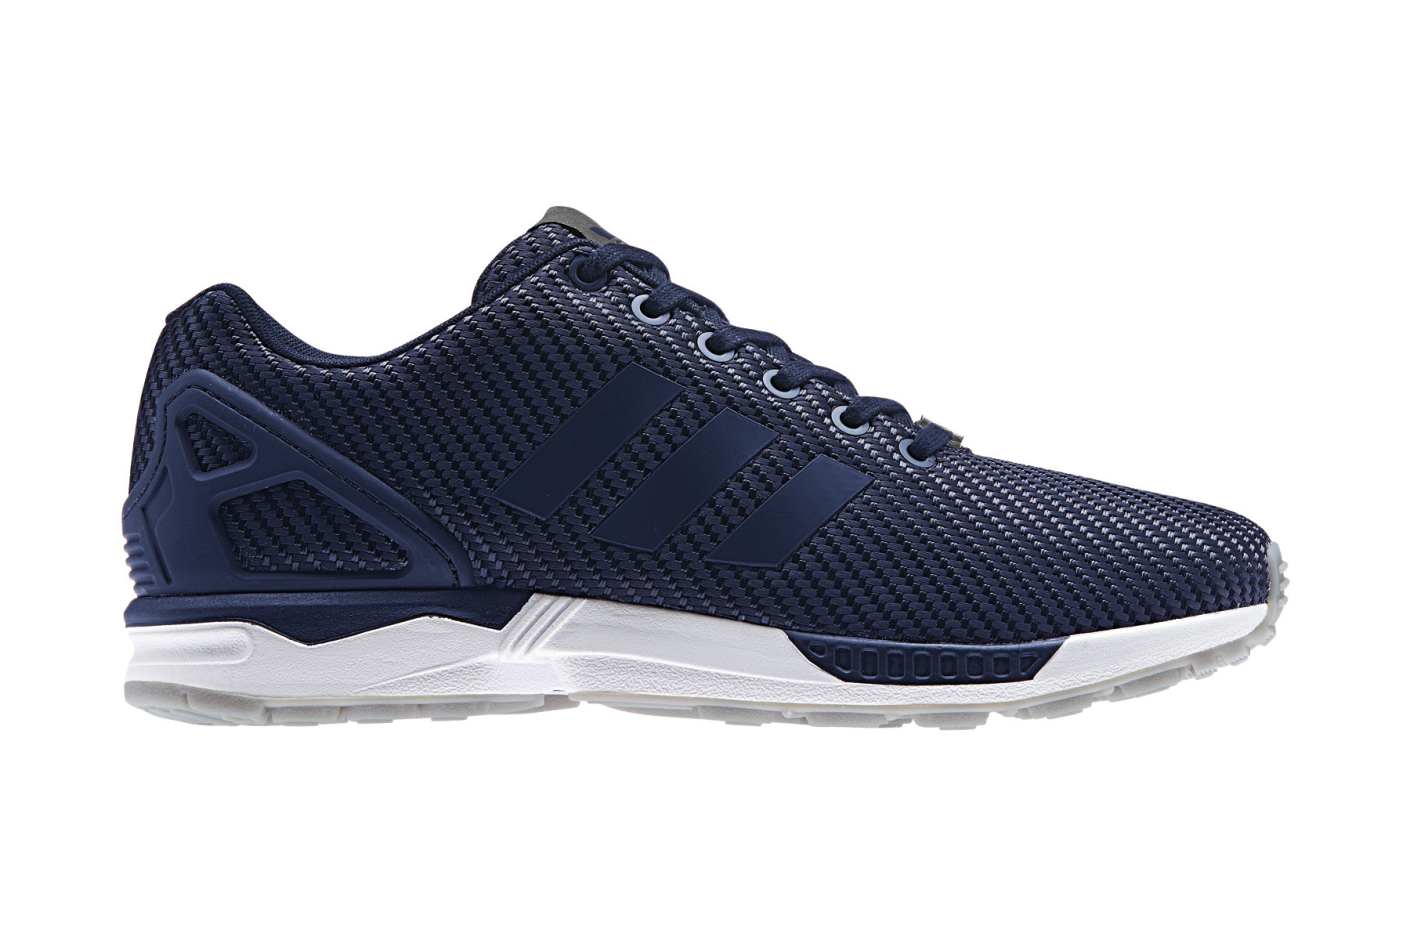 various styles quite nice online retailer Adidas Originals Add More Designs to their ZX Flux ...